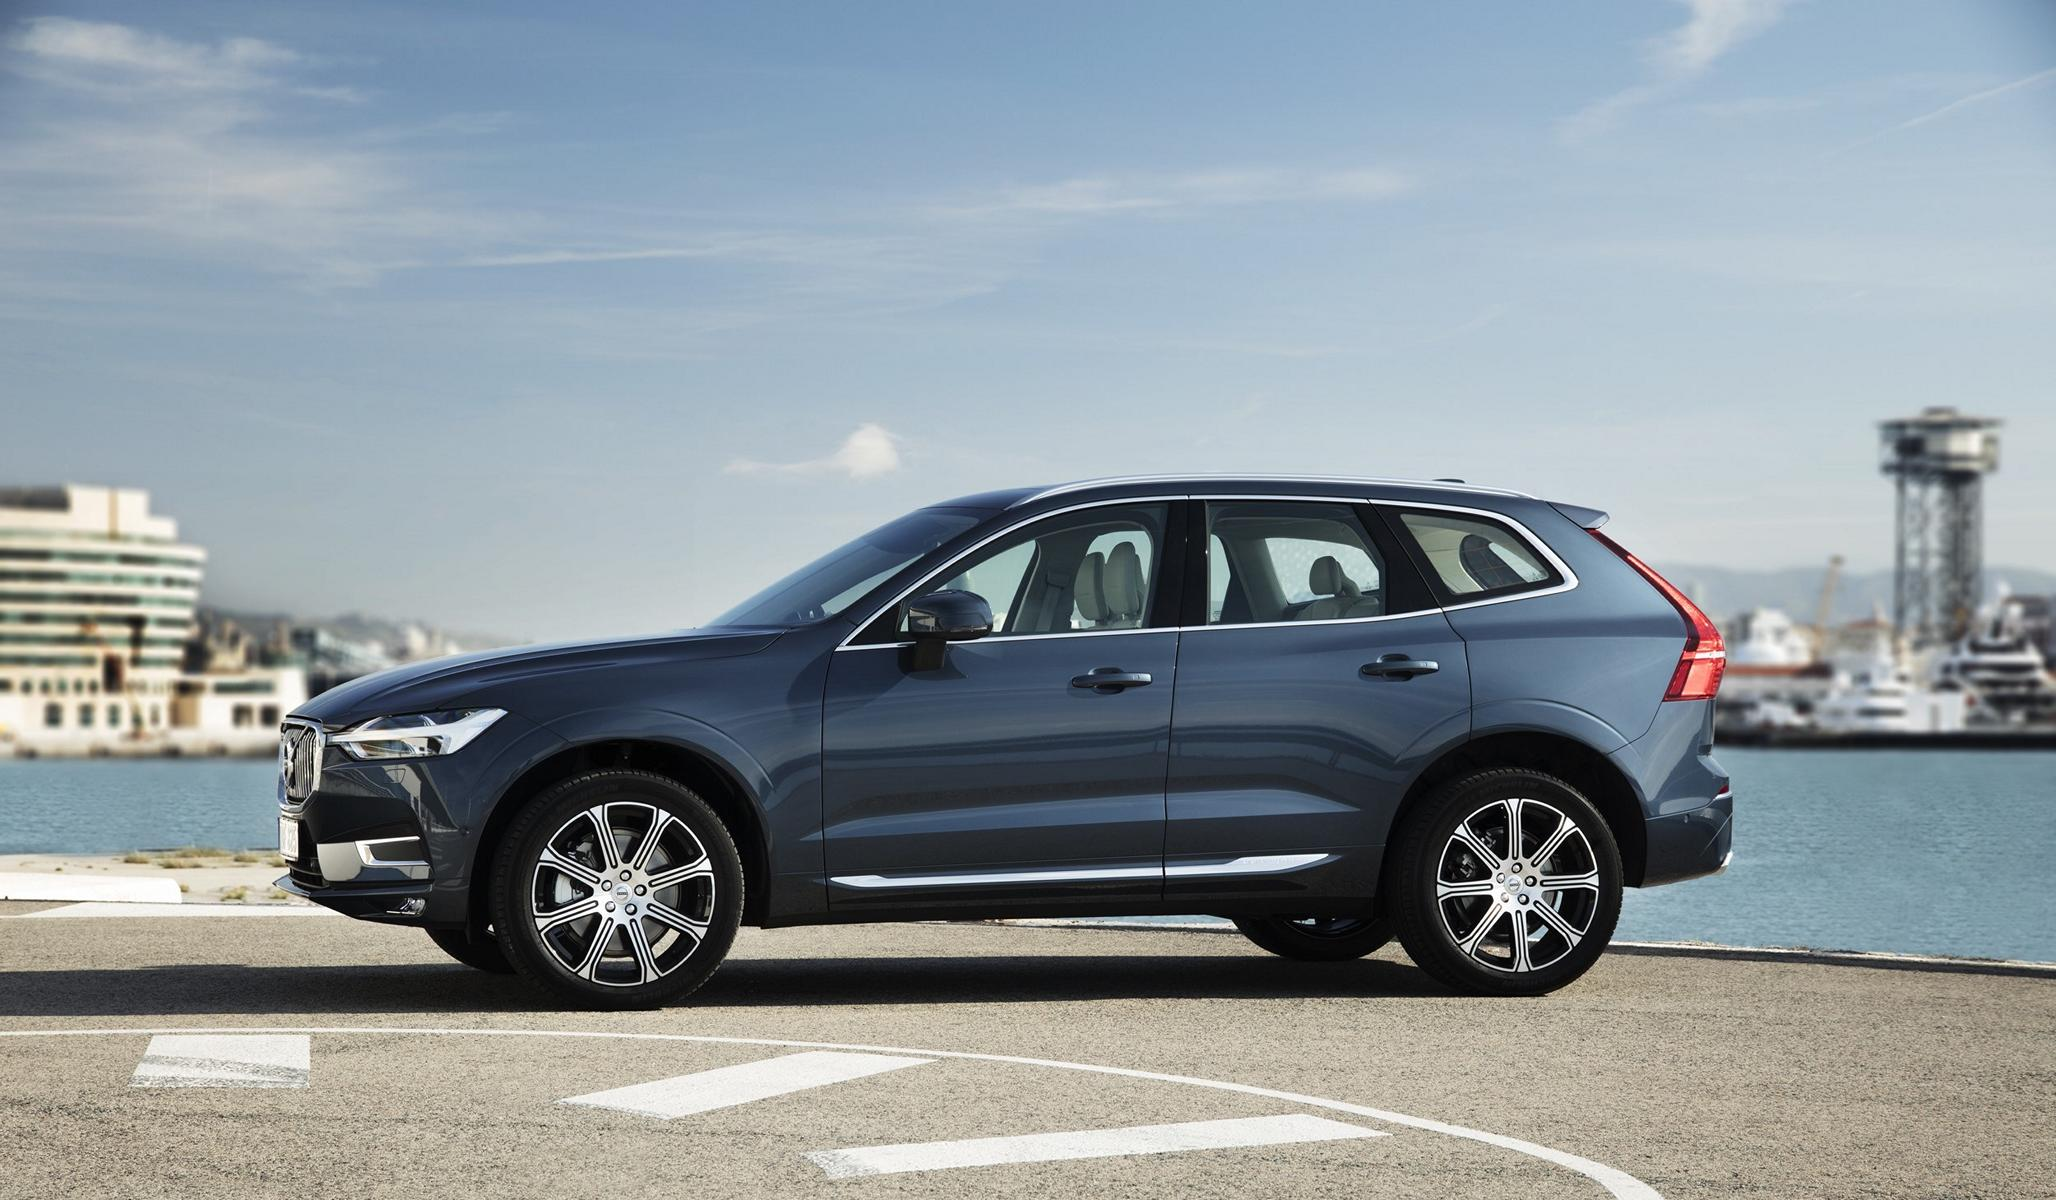 K1600 208163 The new Volvo XC60 T6